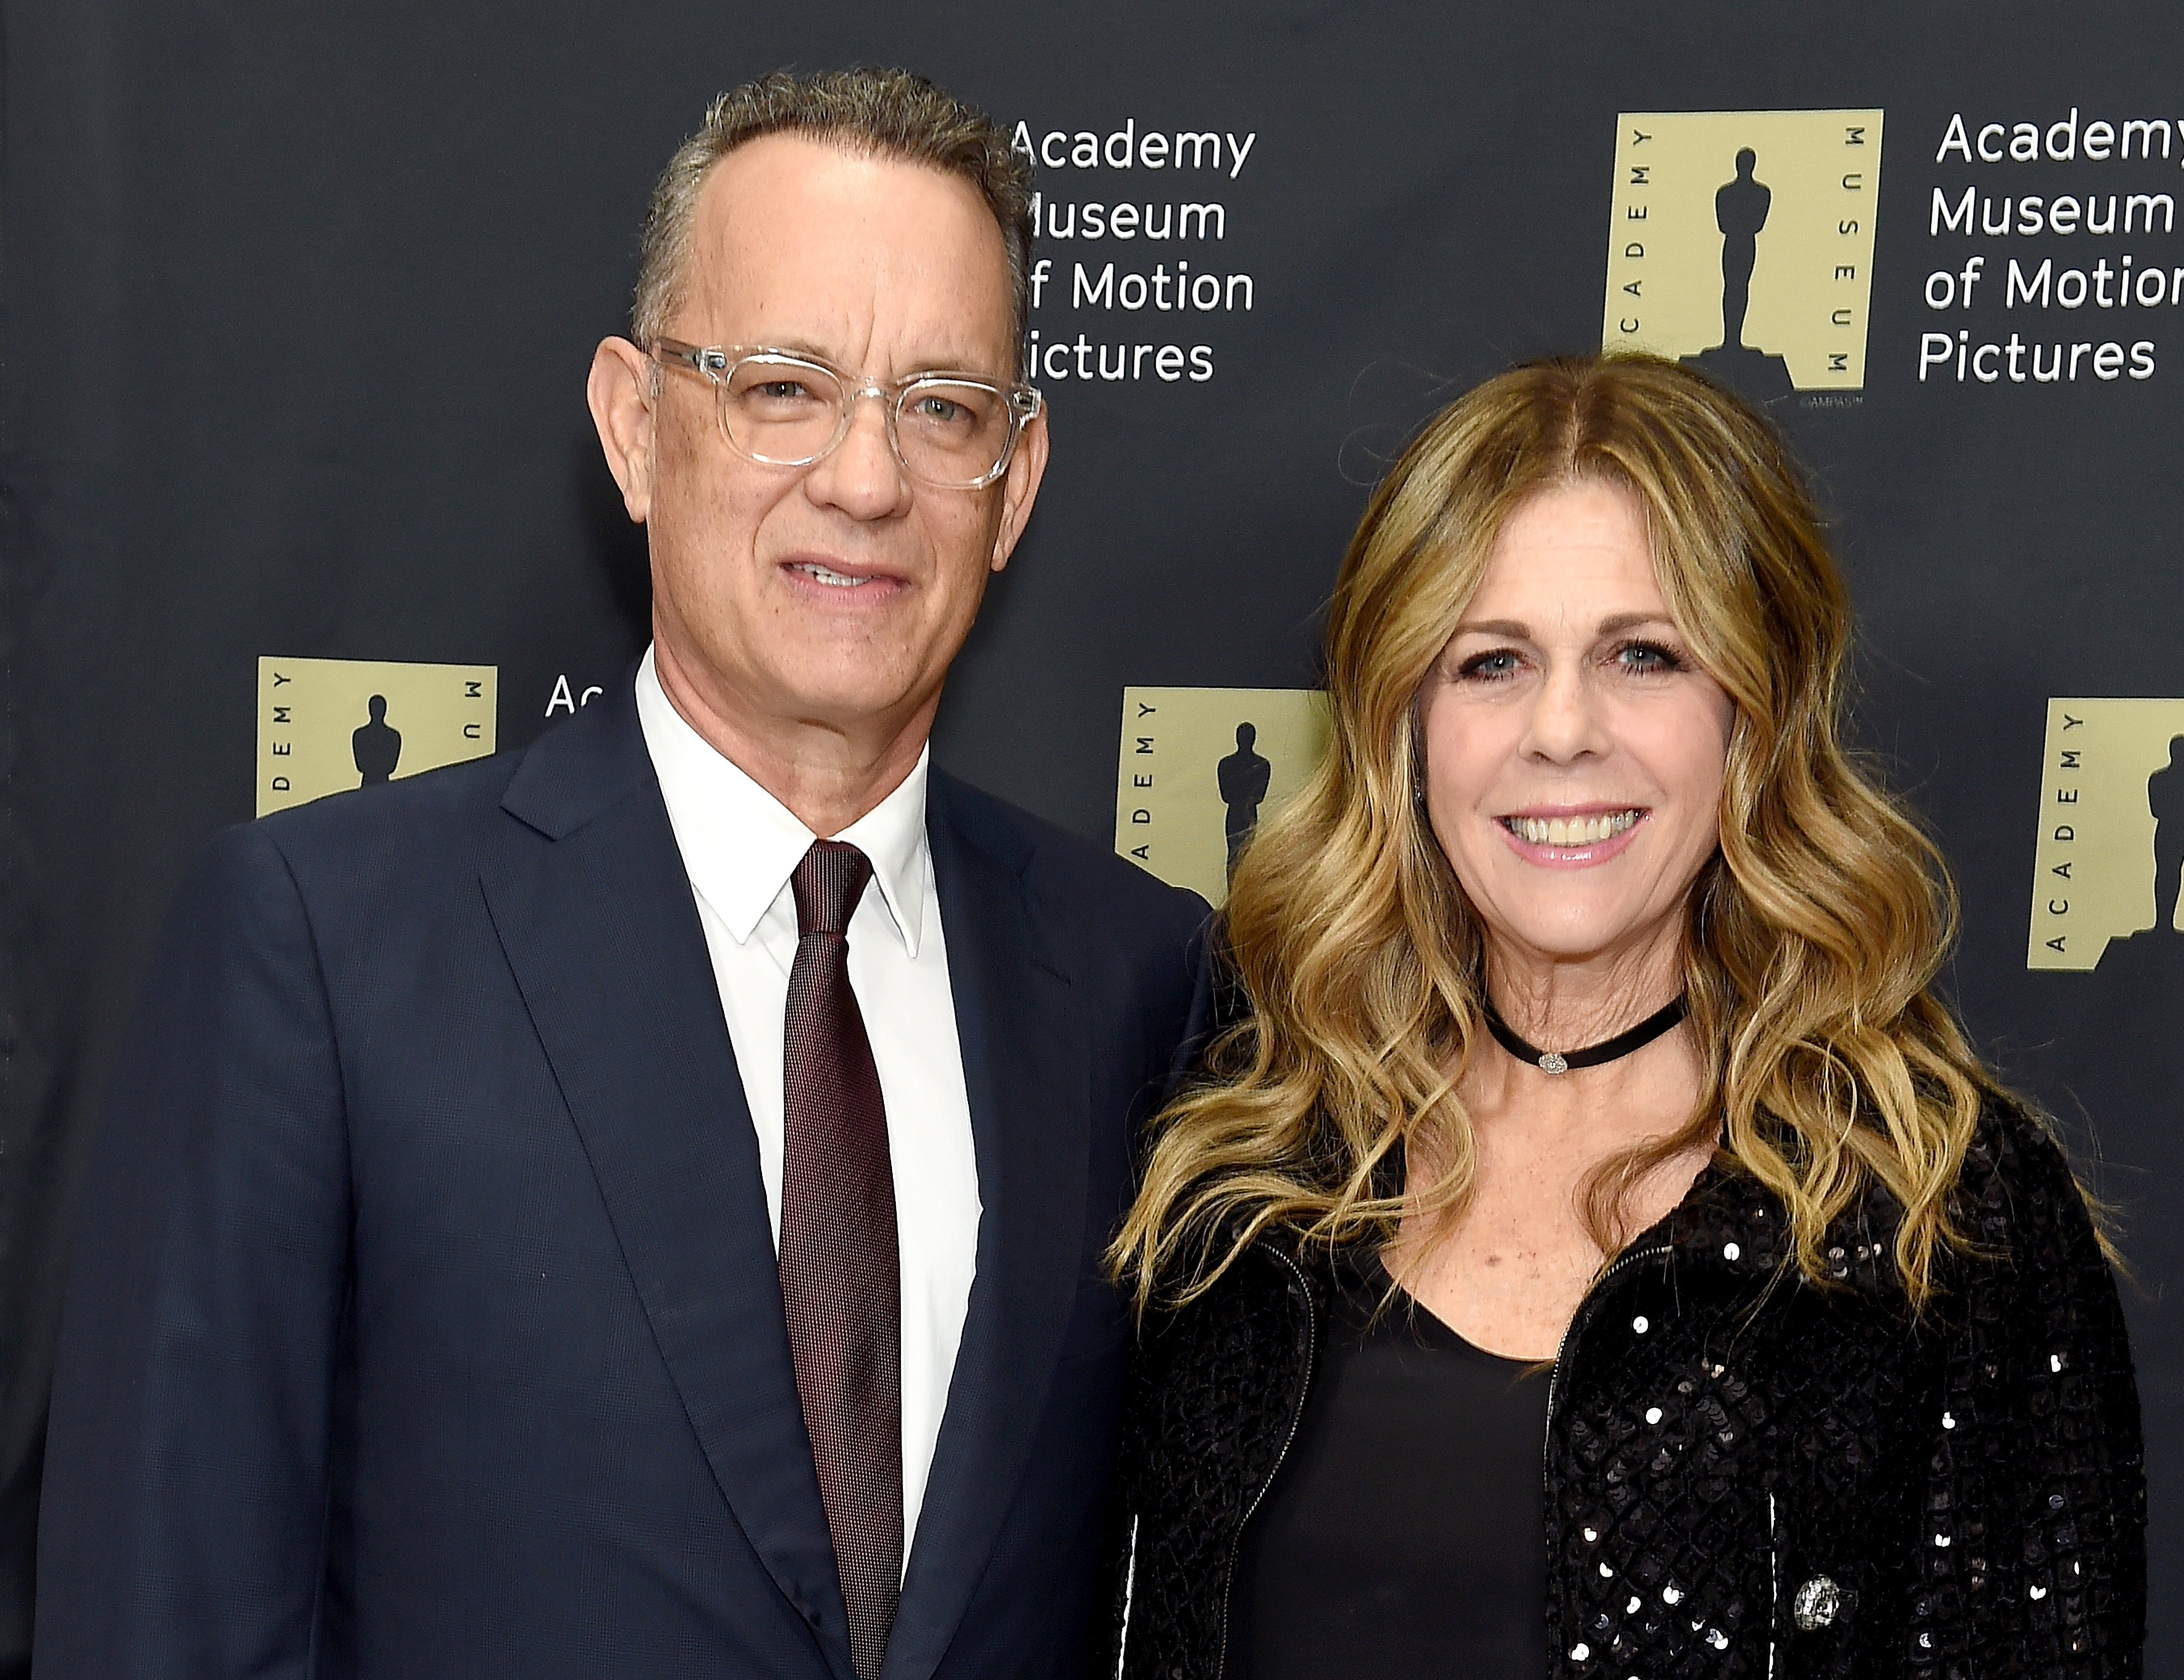 Tom Hanks and Rita Wilson at the unveiling of the Fully Restored Saban Building at Petersen Automotive Museum in Los Angeles, California | Photo: Gregg DeGuire/Getty Images